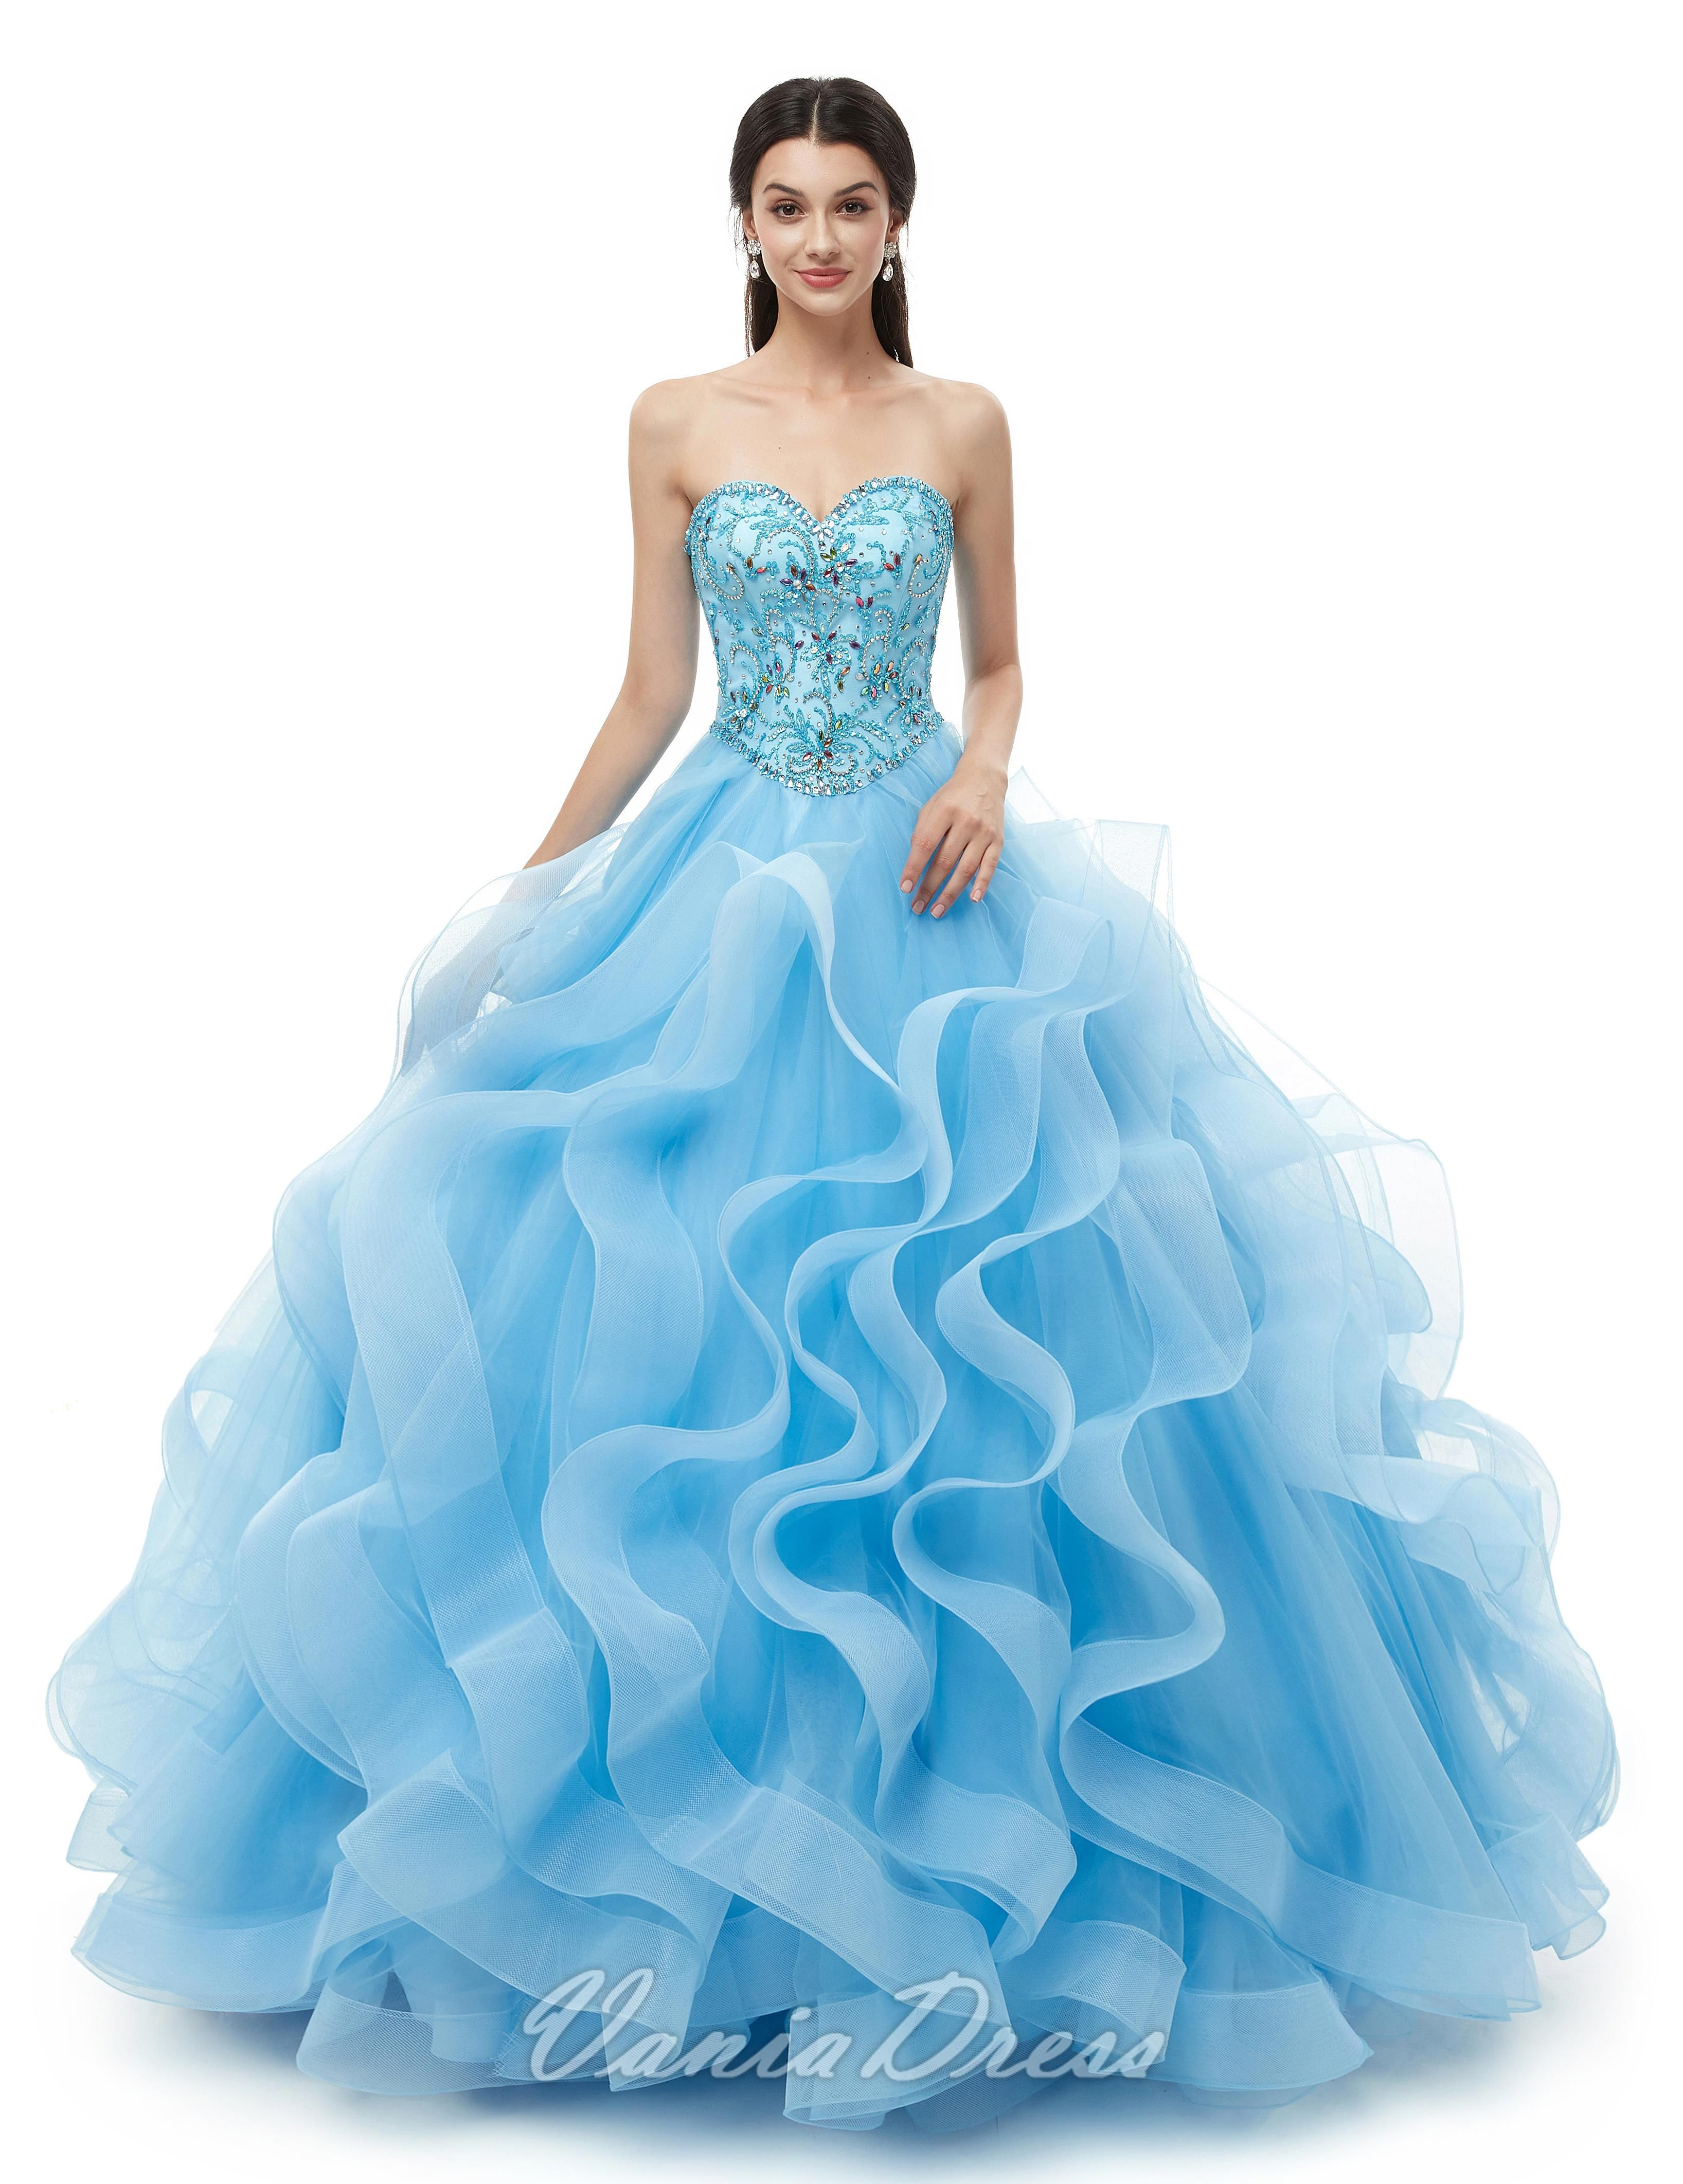 Ball Gown Sweetheart Organza Sweet 16 Quinceanera Dresses With Beads 250ds Ball Gowns Gowns Dresses [ 4247 x 3272 Pixel ]